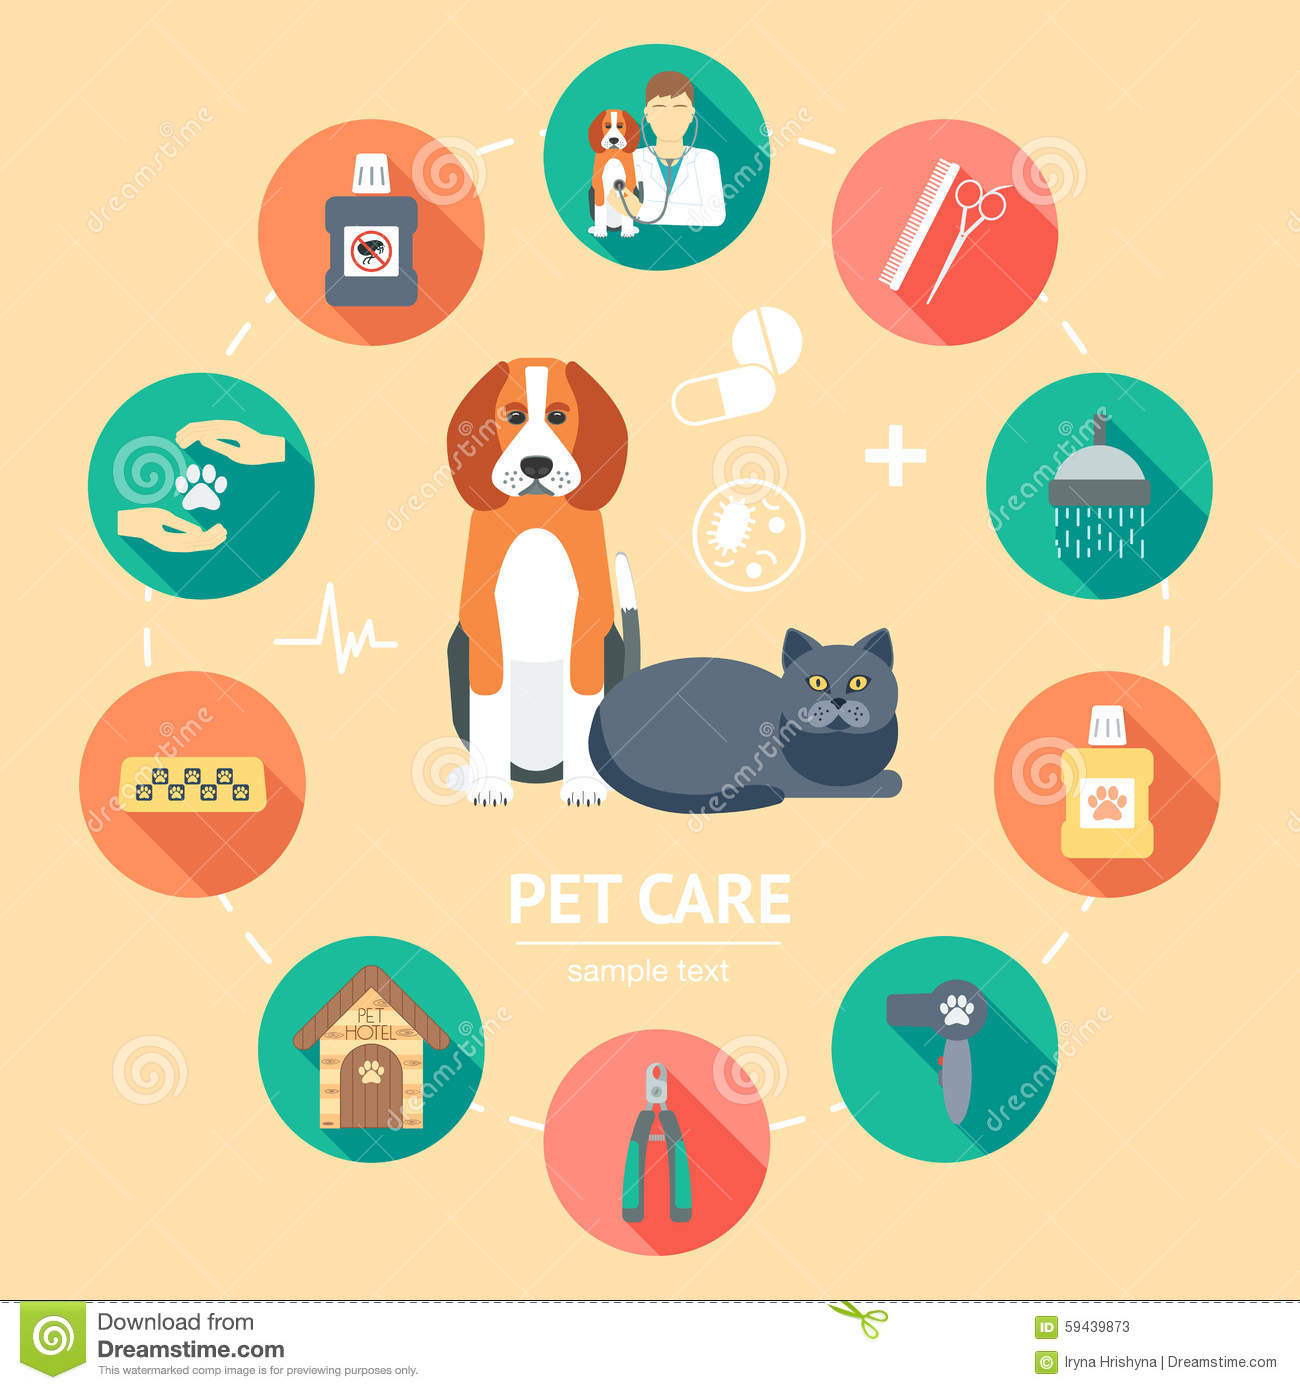 Pet Care Flat Icon Set. Pet Care Banner, Background, Poster, Concept. Flat  Design. Vector  Pet Poster